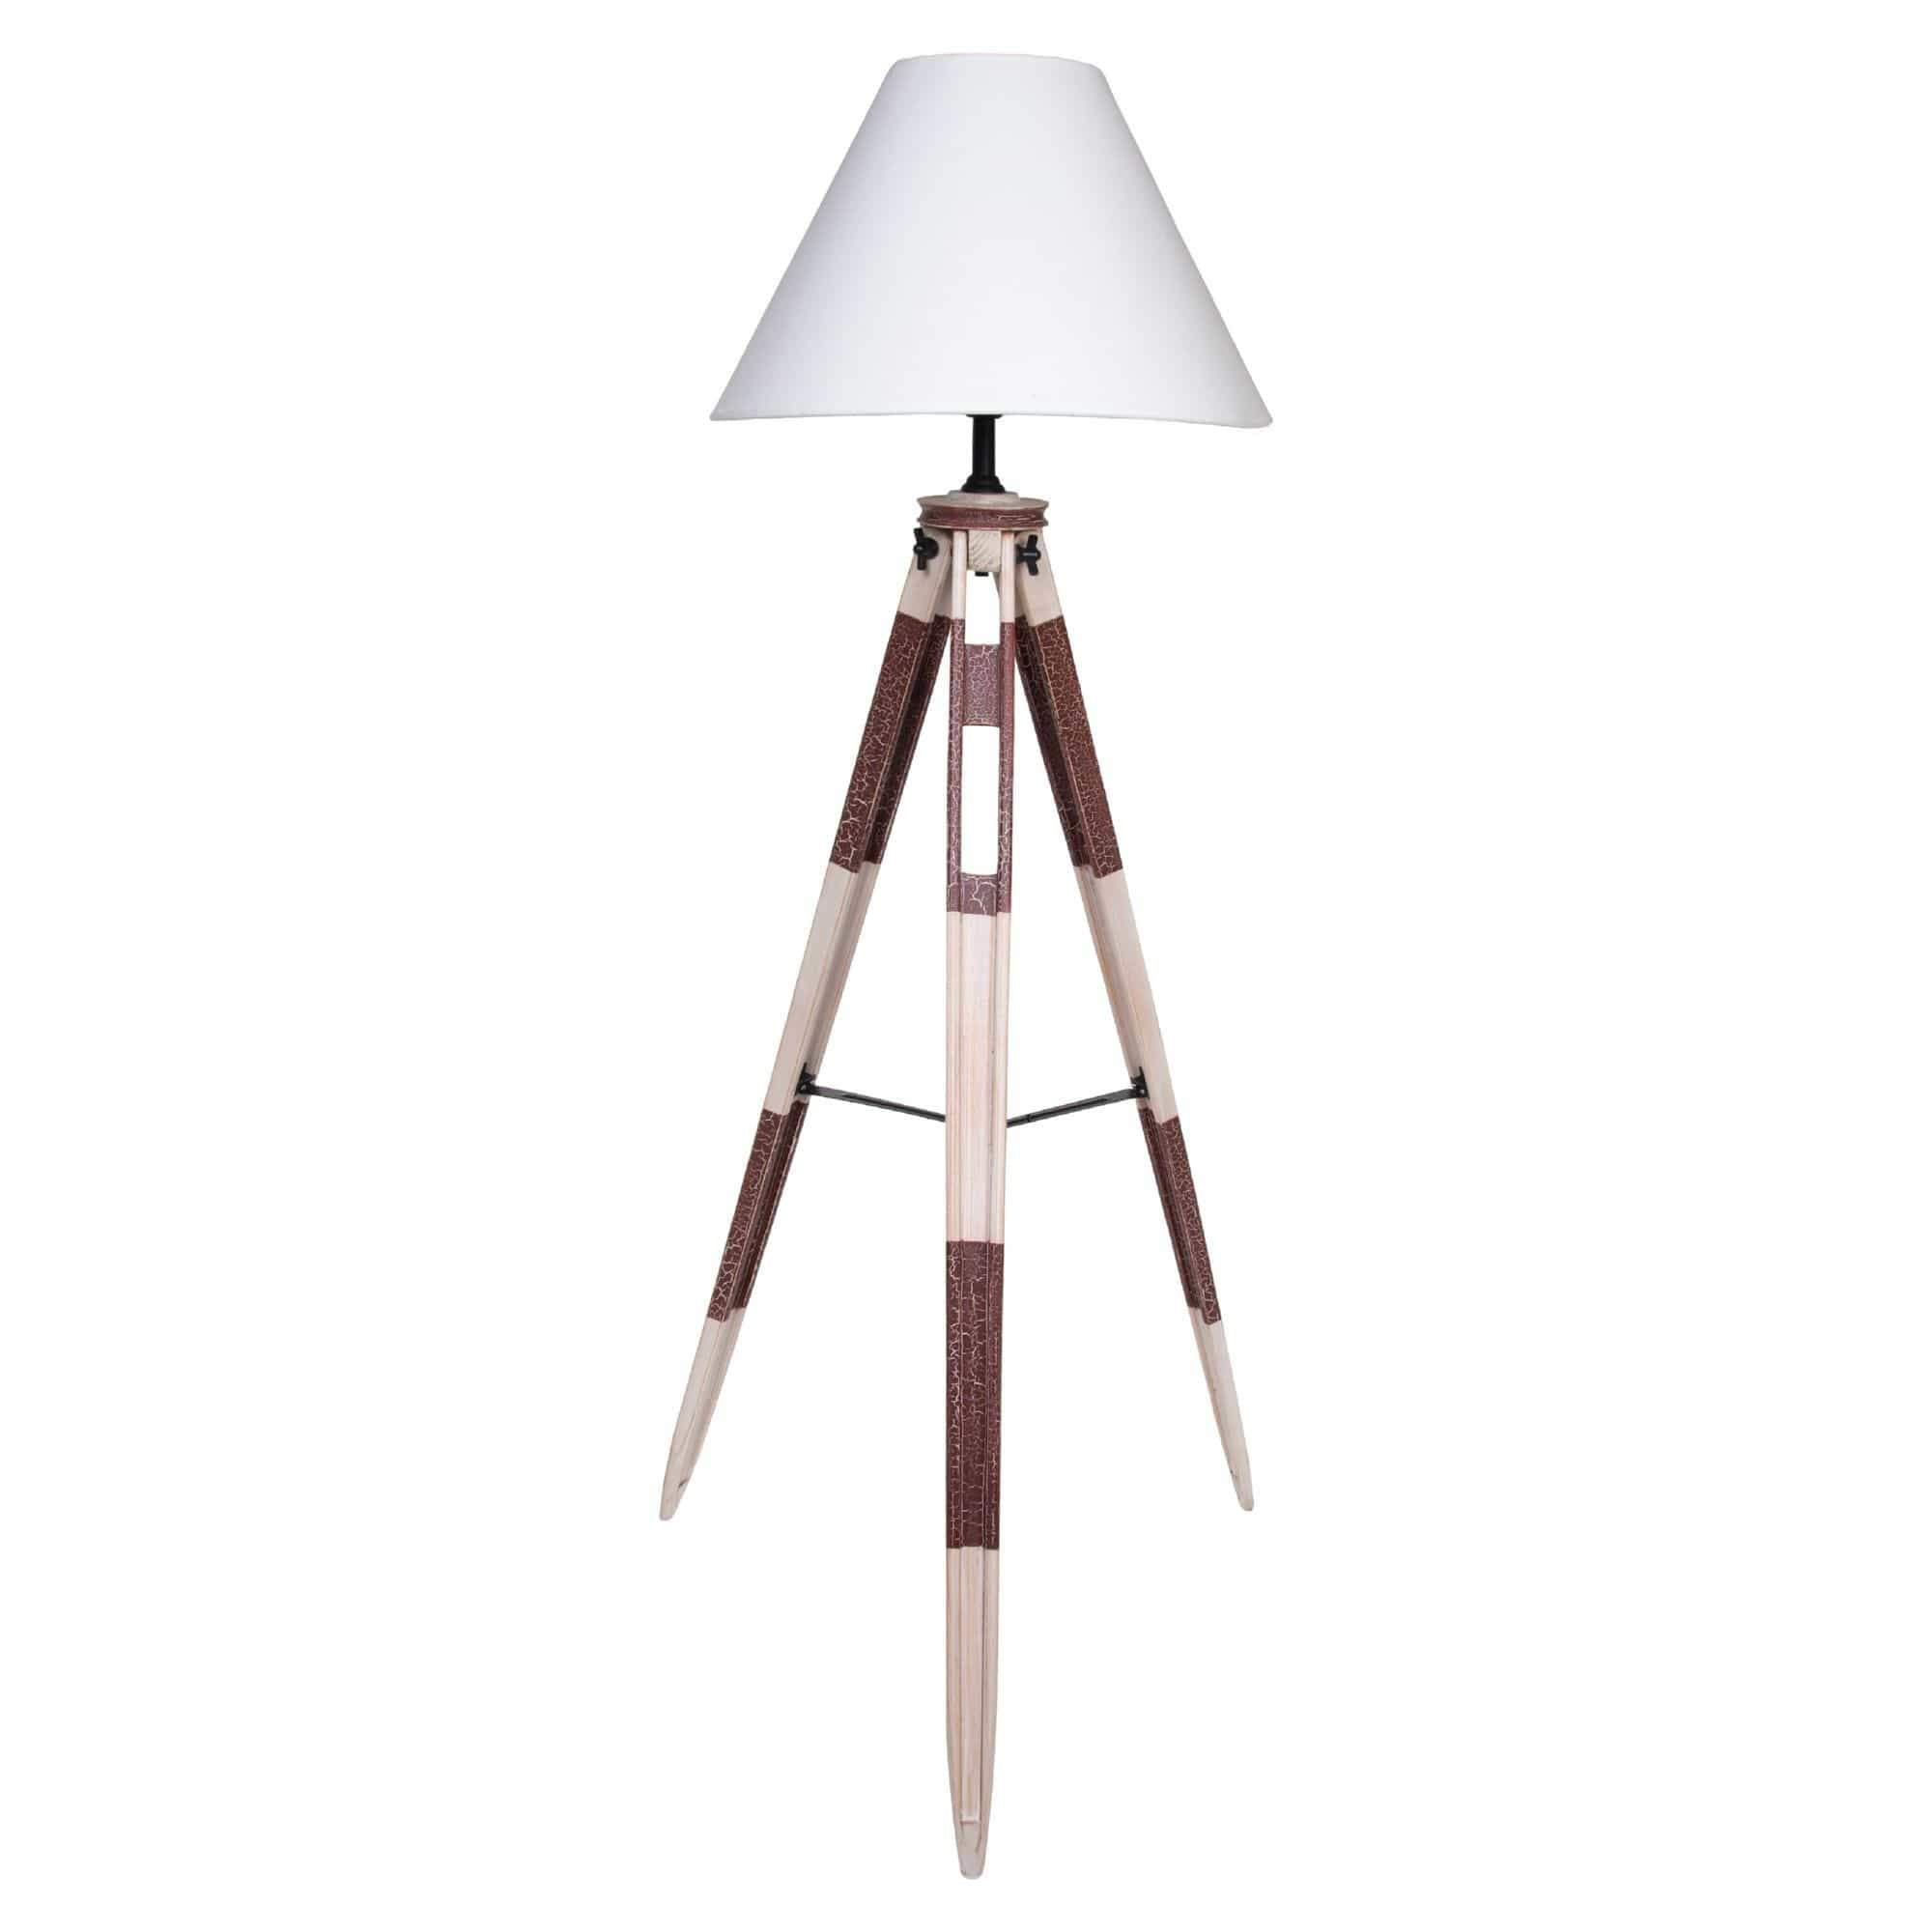 Batela Giftware-Lamp-Tripod Lamp - Tall